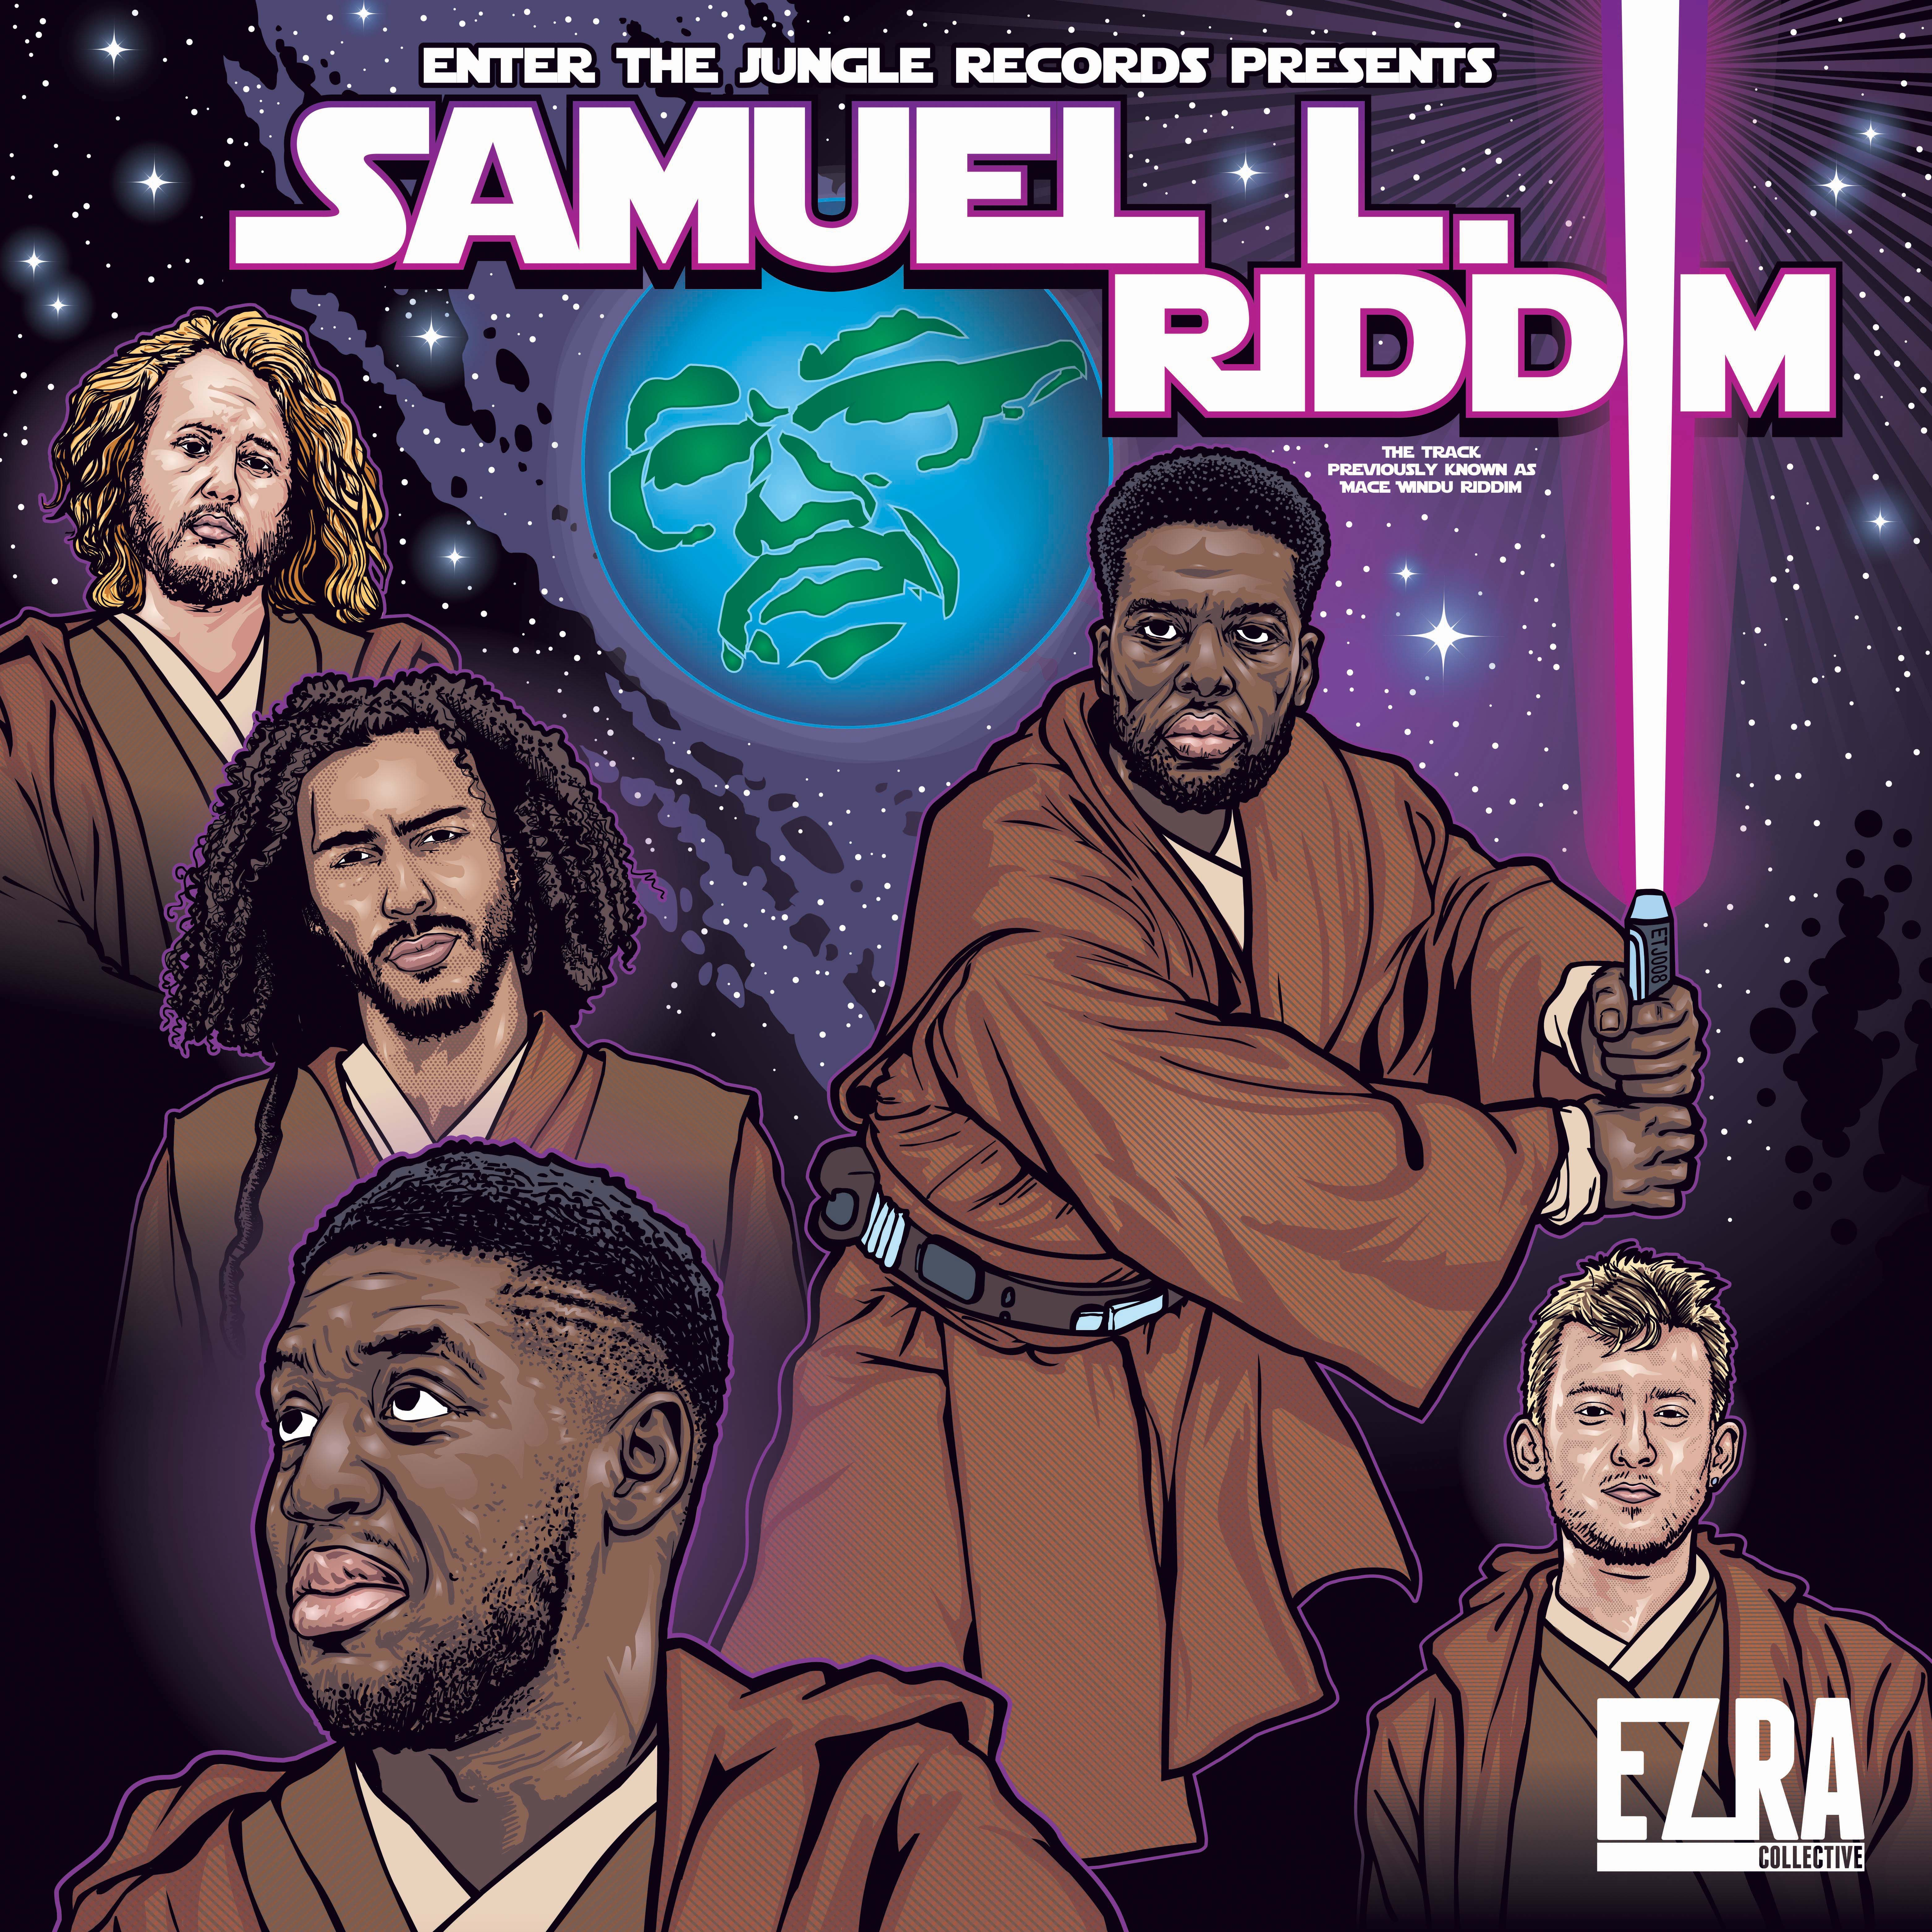 Ezra Collective - Samuel L.Riddim / Dark Side Riddim